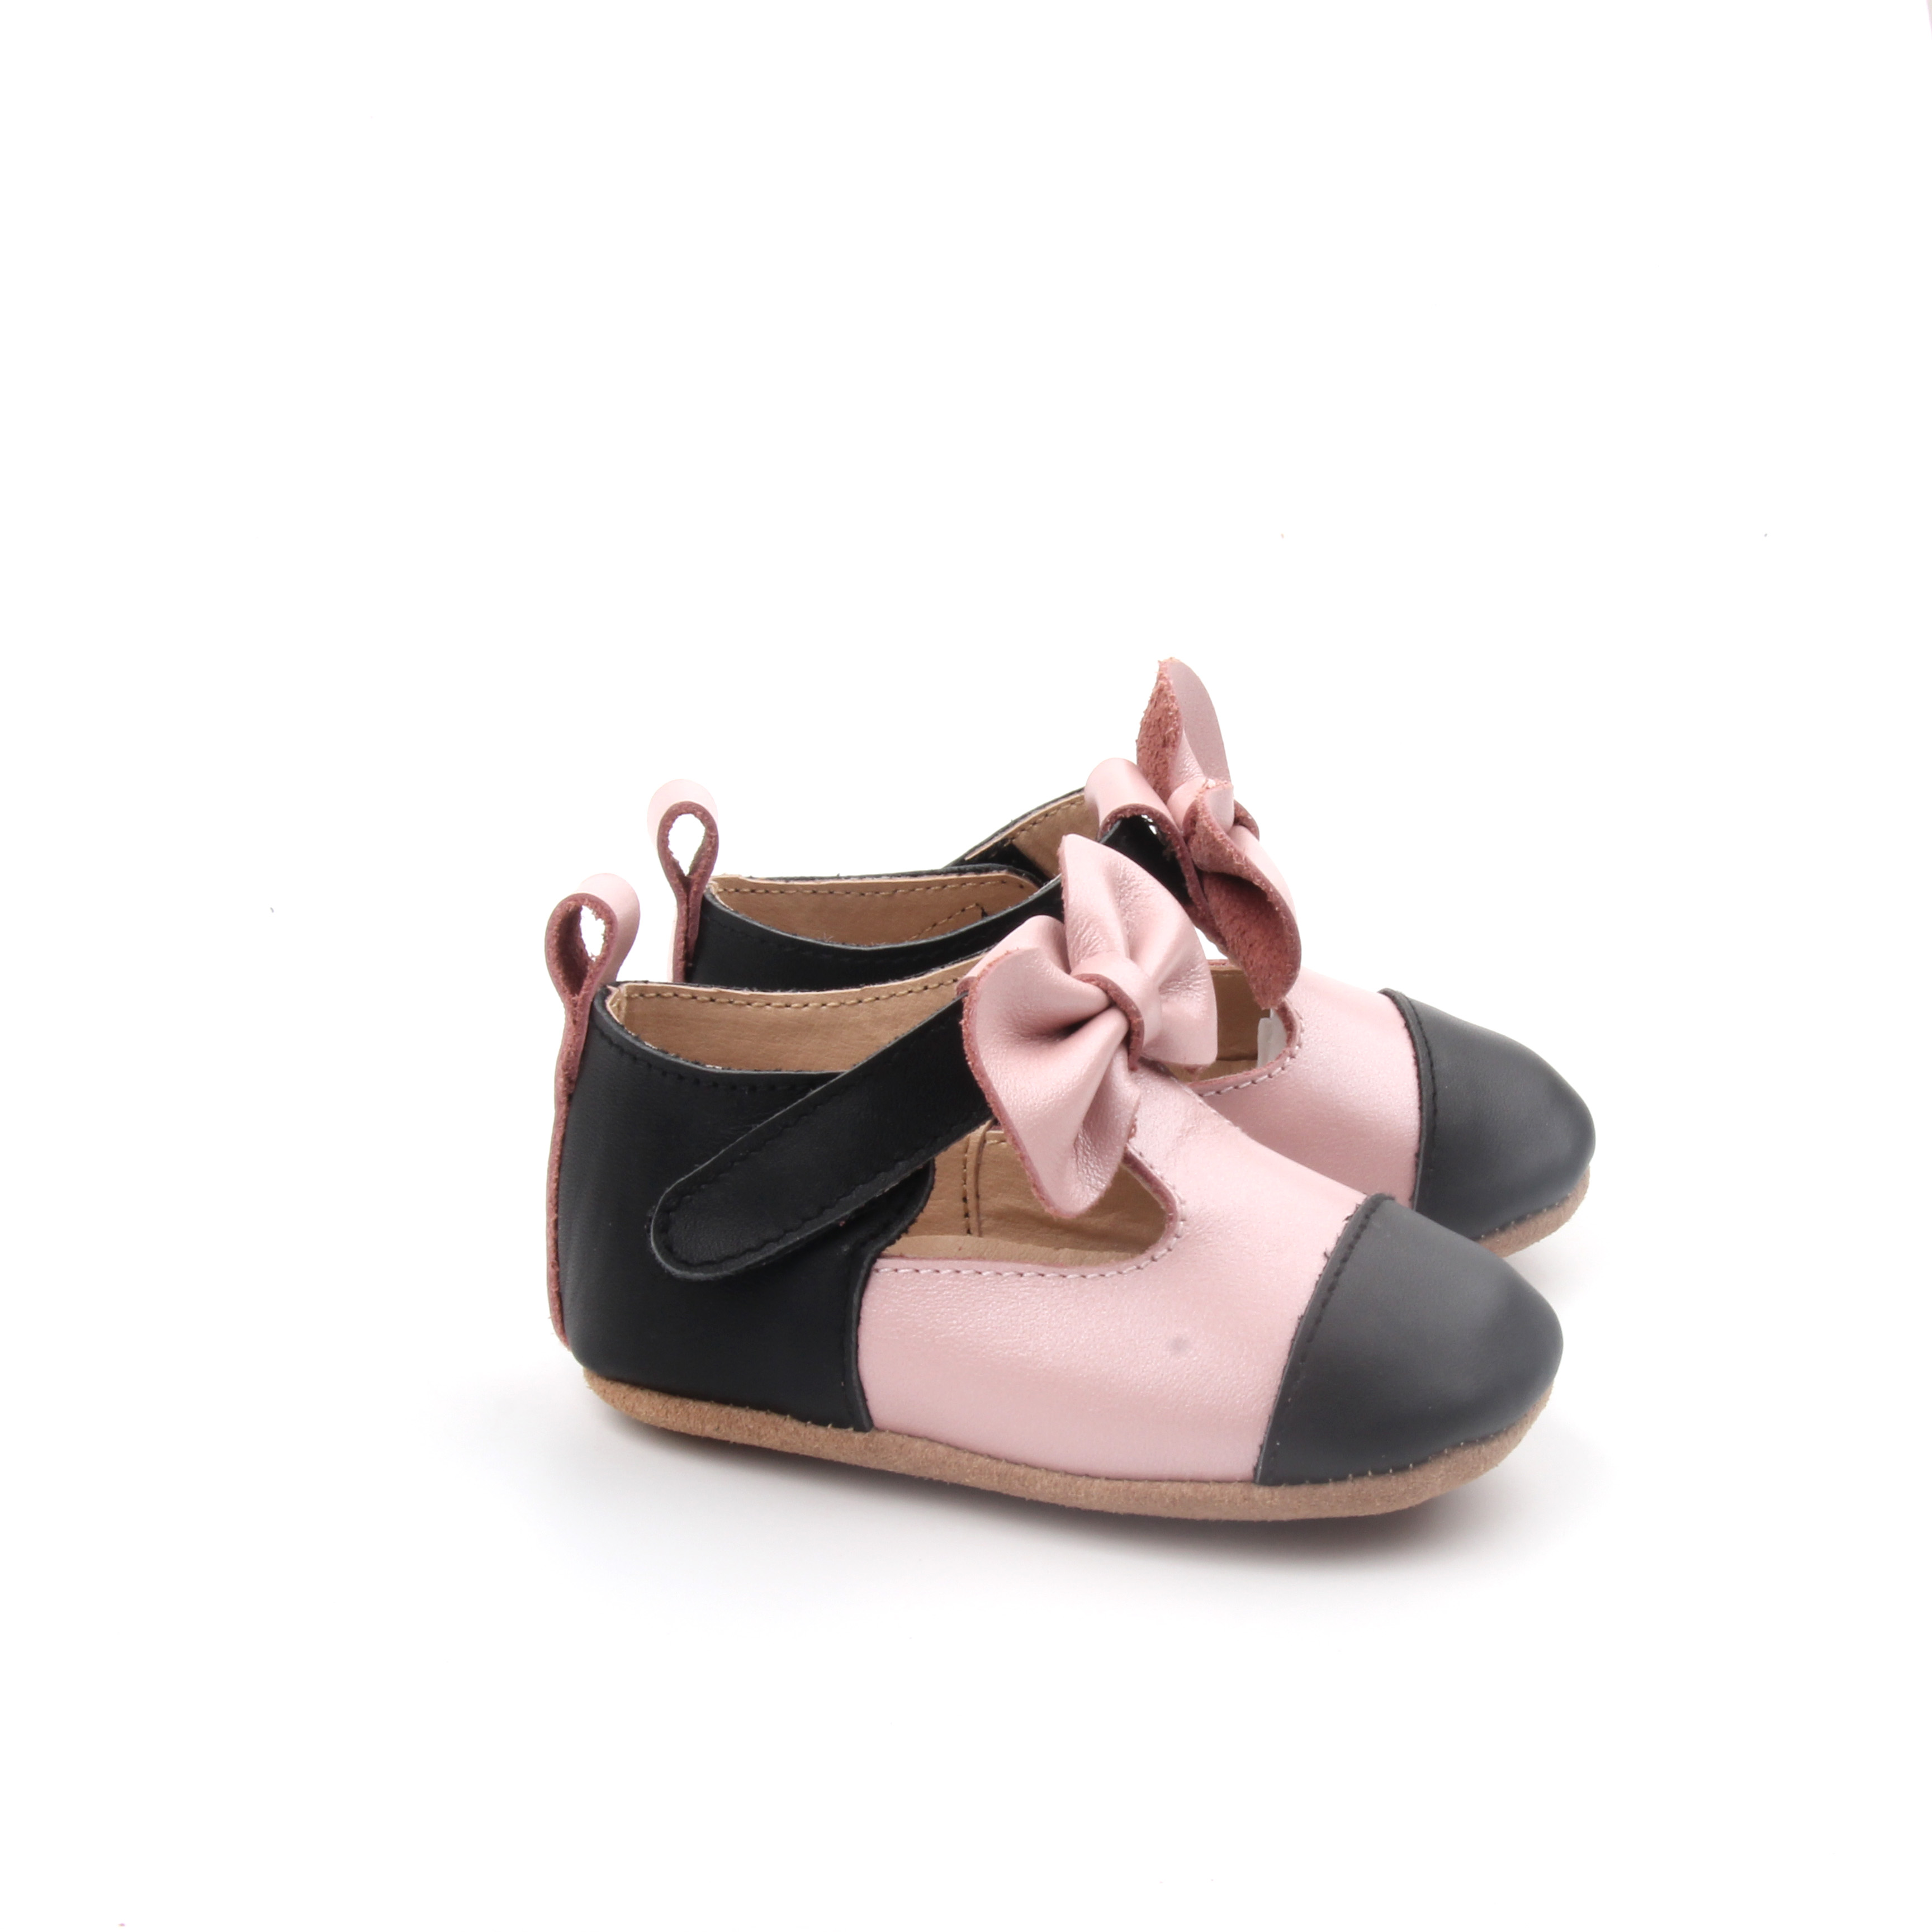 Baby Soft Leather T Bar Dress Shoes